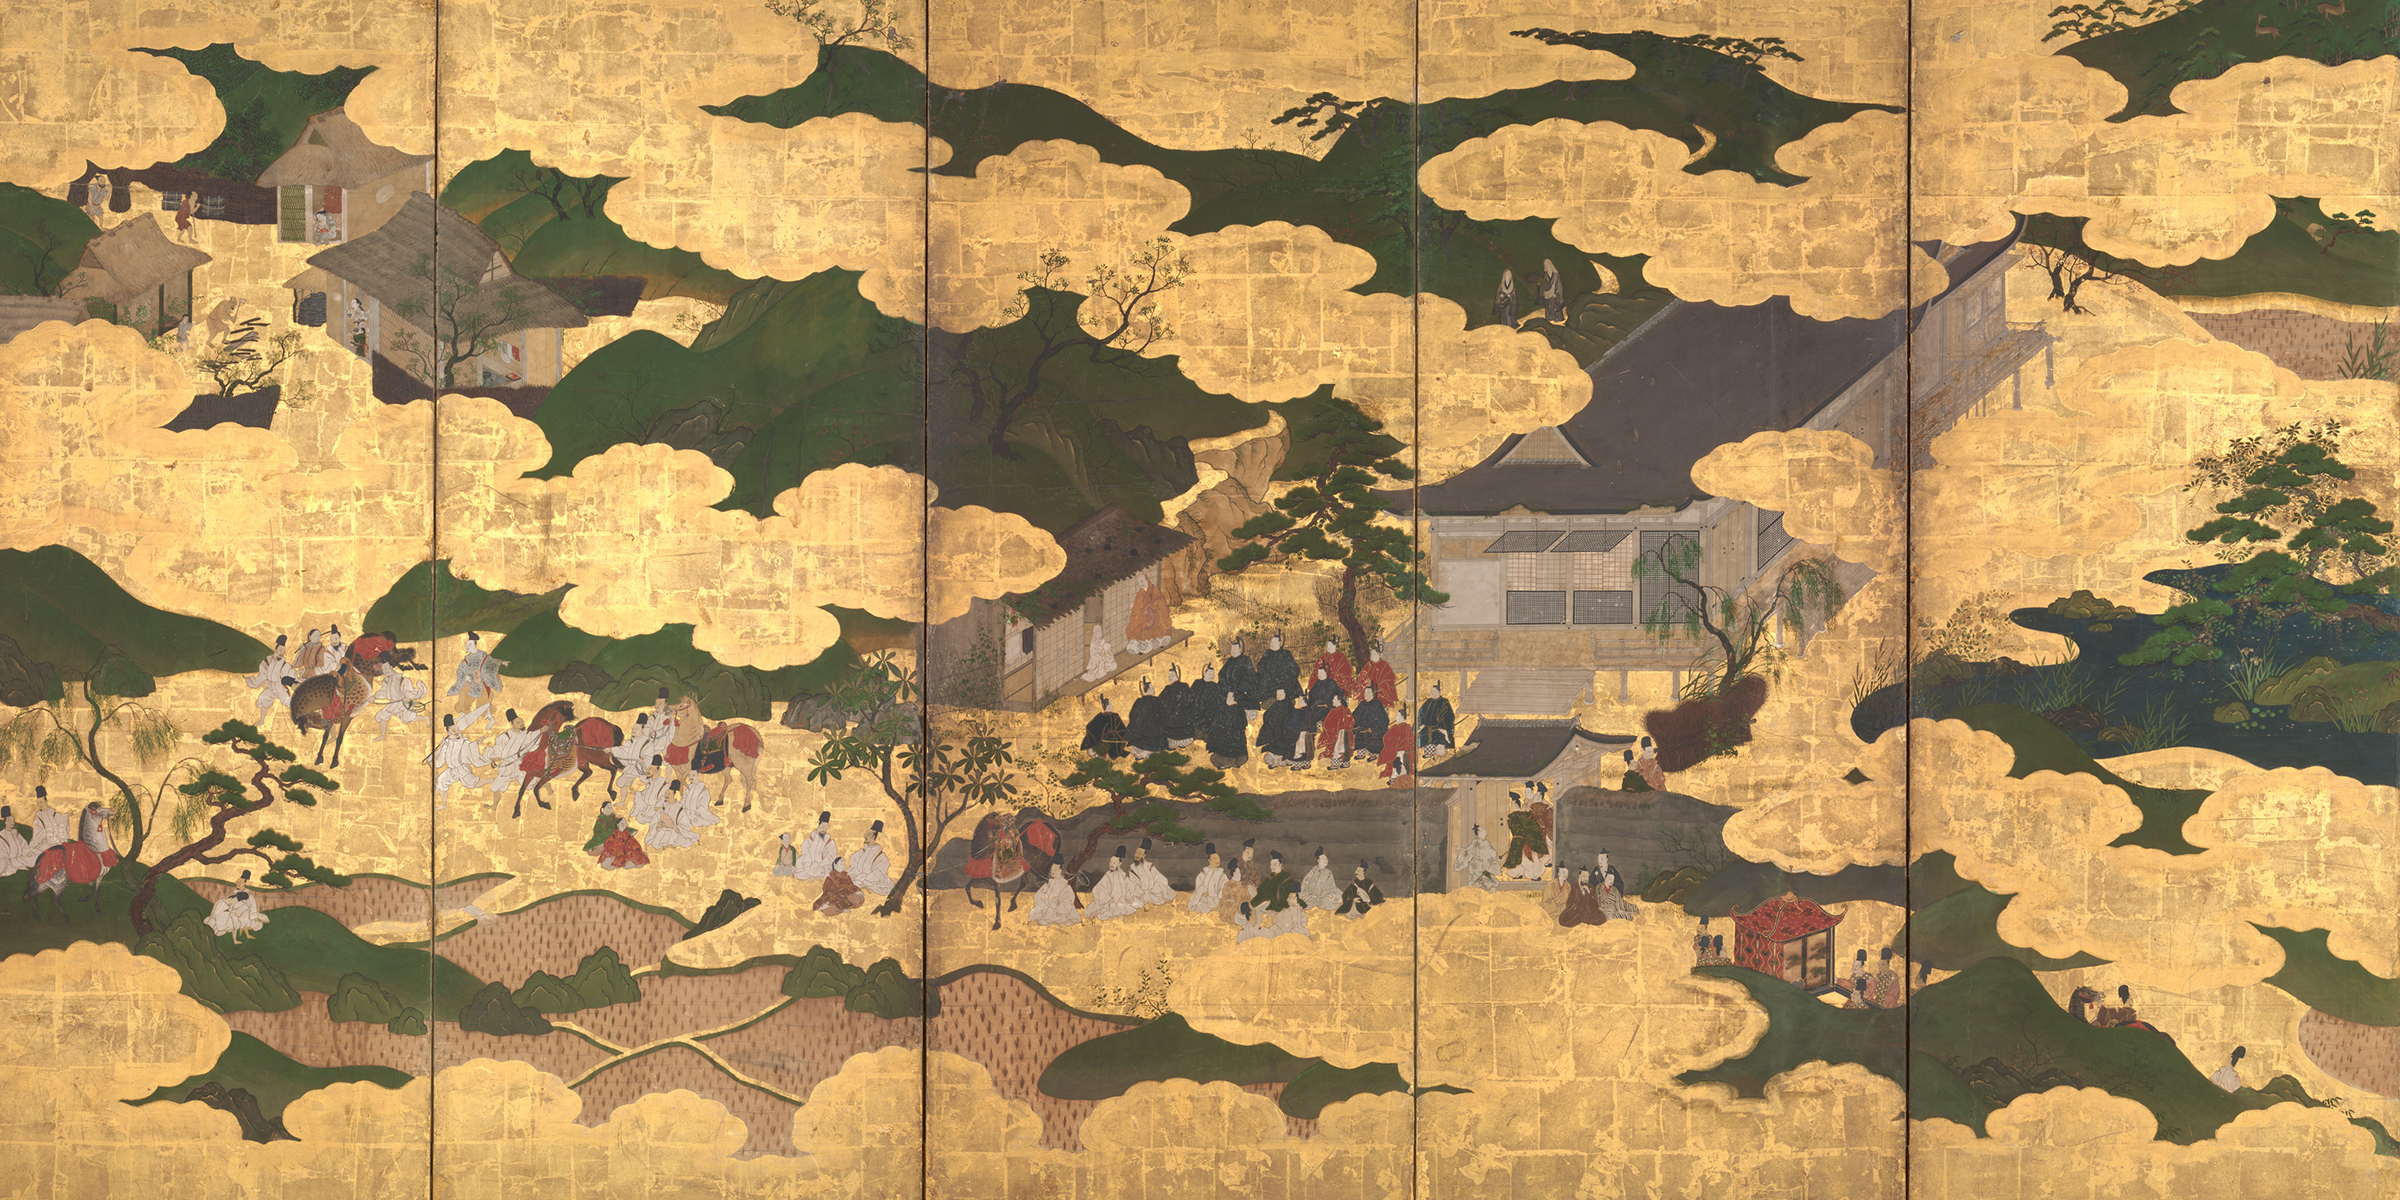 Japanese folding screen depicting a scene from the Tale of the Heike, seventeenth century. The Metropolitan Museum of Art.